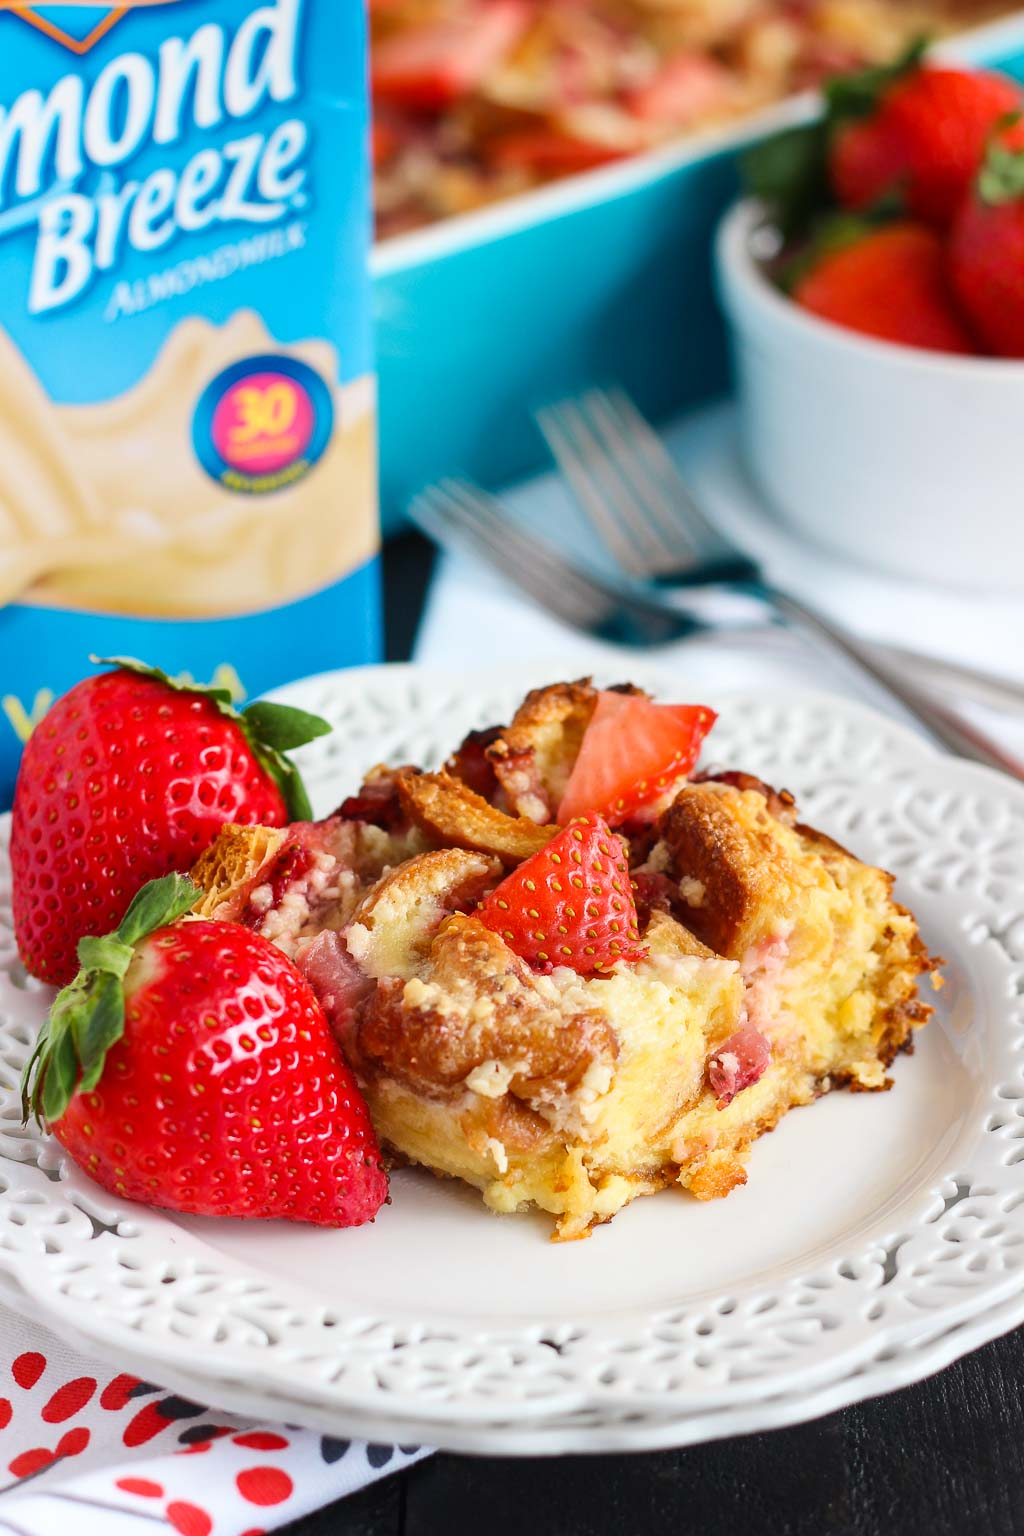 This Strawberries and Cream Croissant Bake is bursting with fresh strawberries, sweetened cream cheese and soft croissants. It's an easy, make-ahead dish that'll be the perfect addition to your breakfast or brunch table!